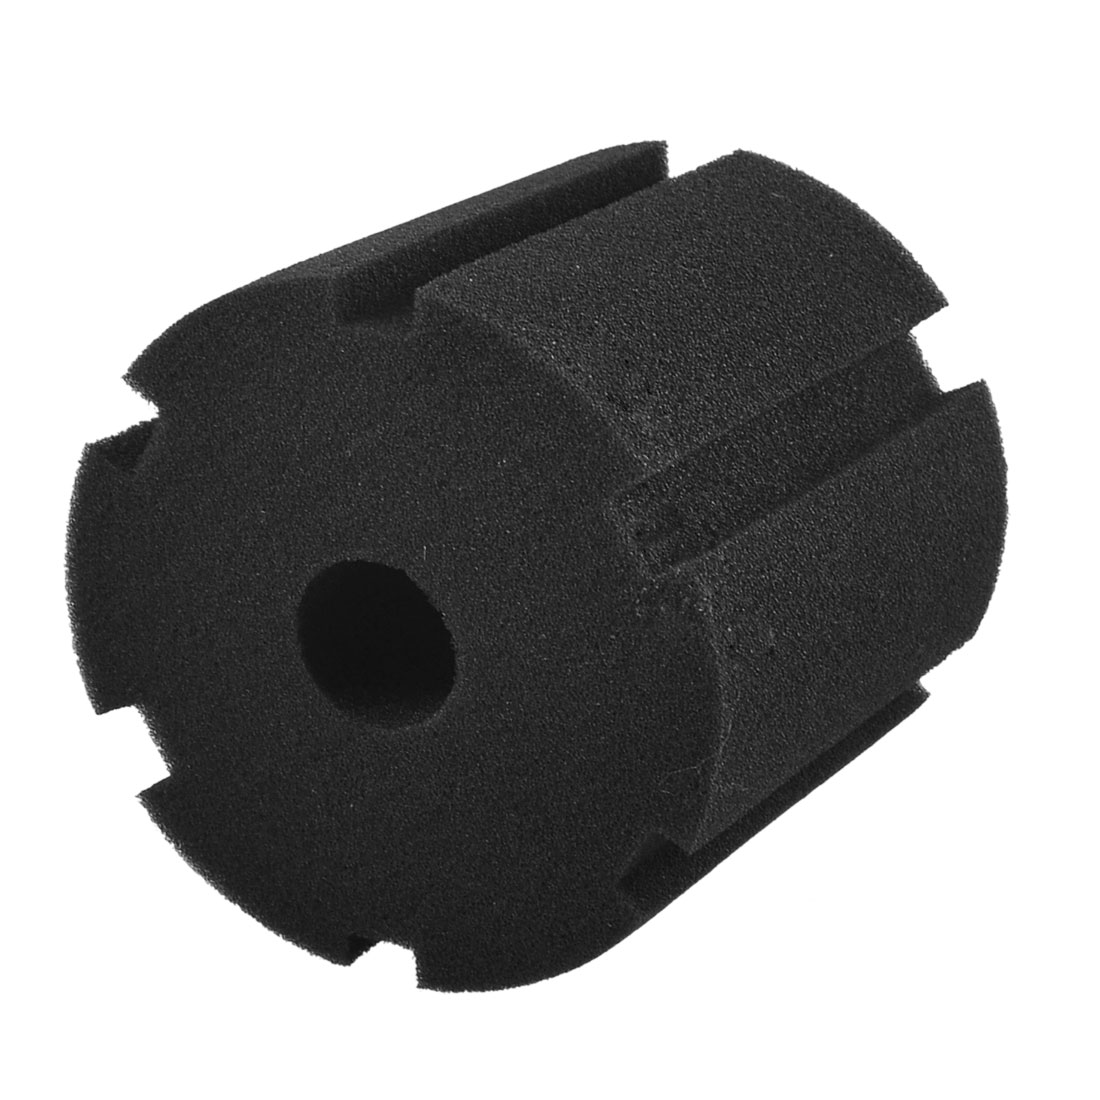 "Black 3.9"" Height Cylinder Sponge for Aquarium Water Filter"